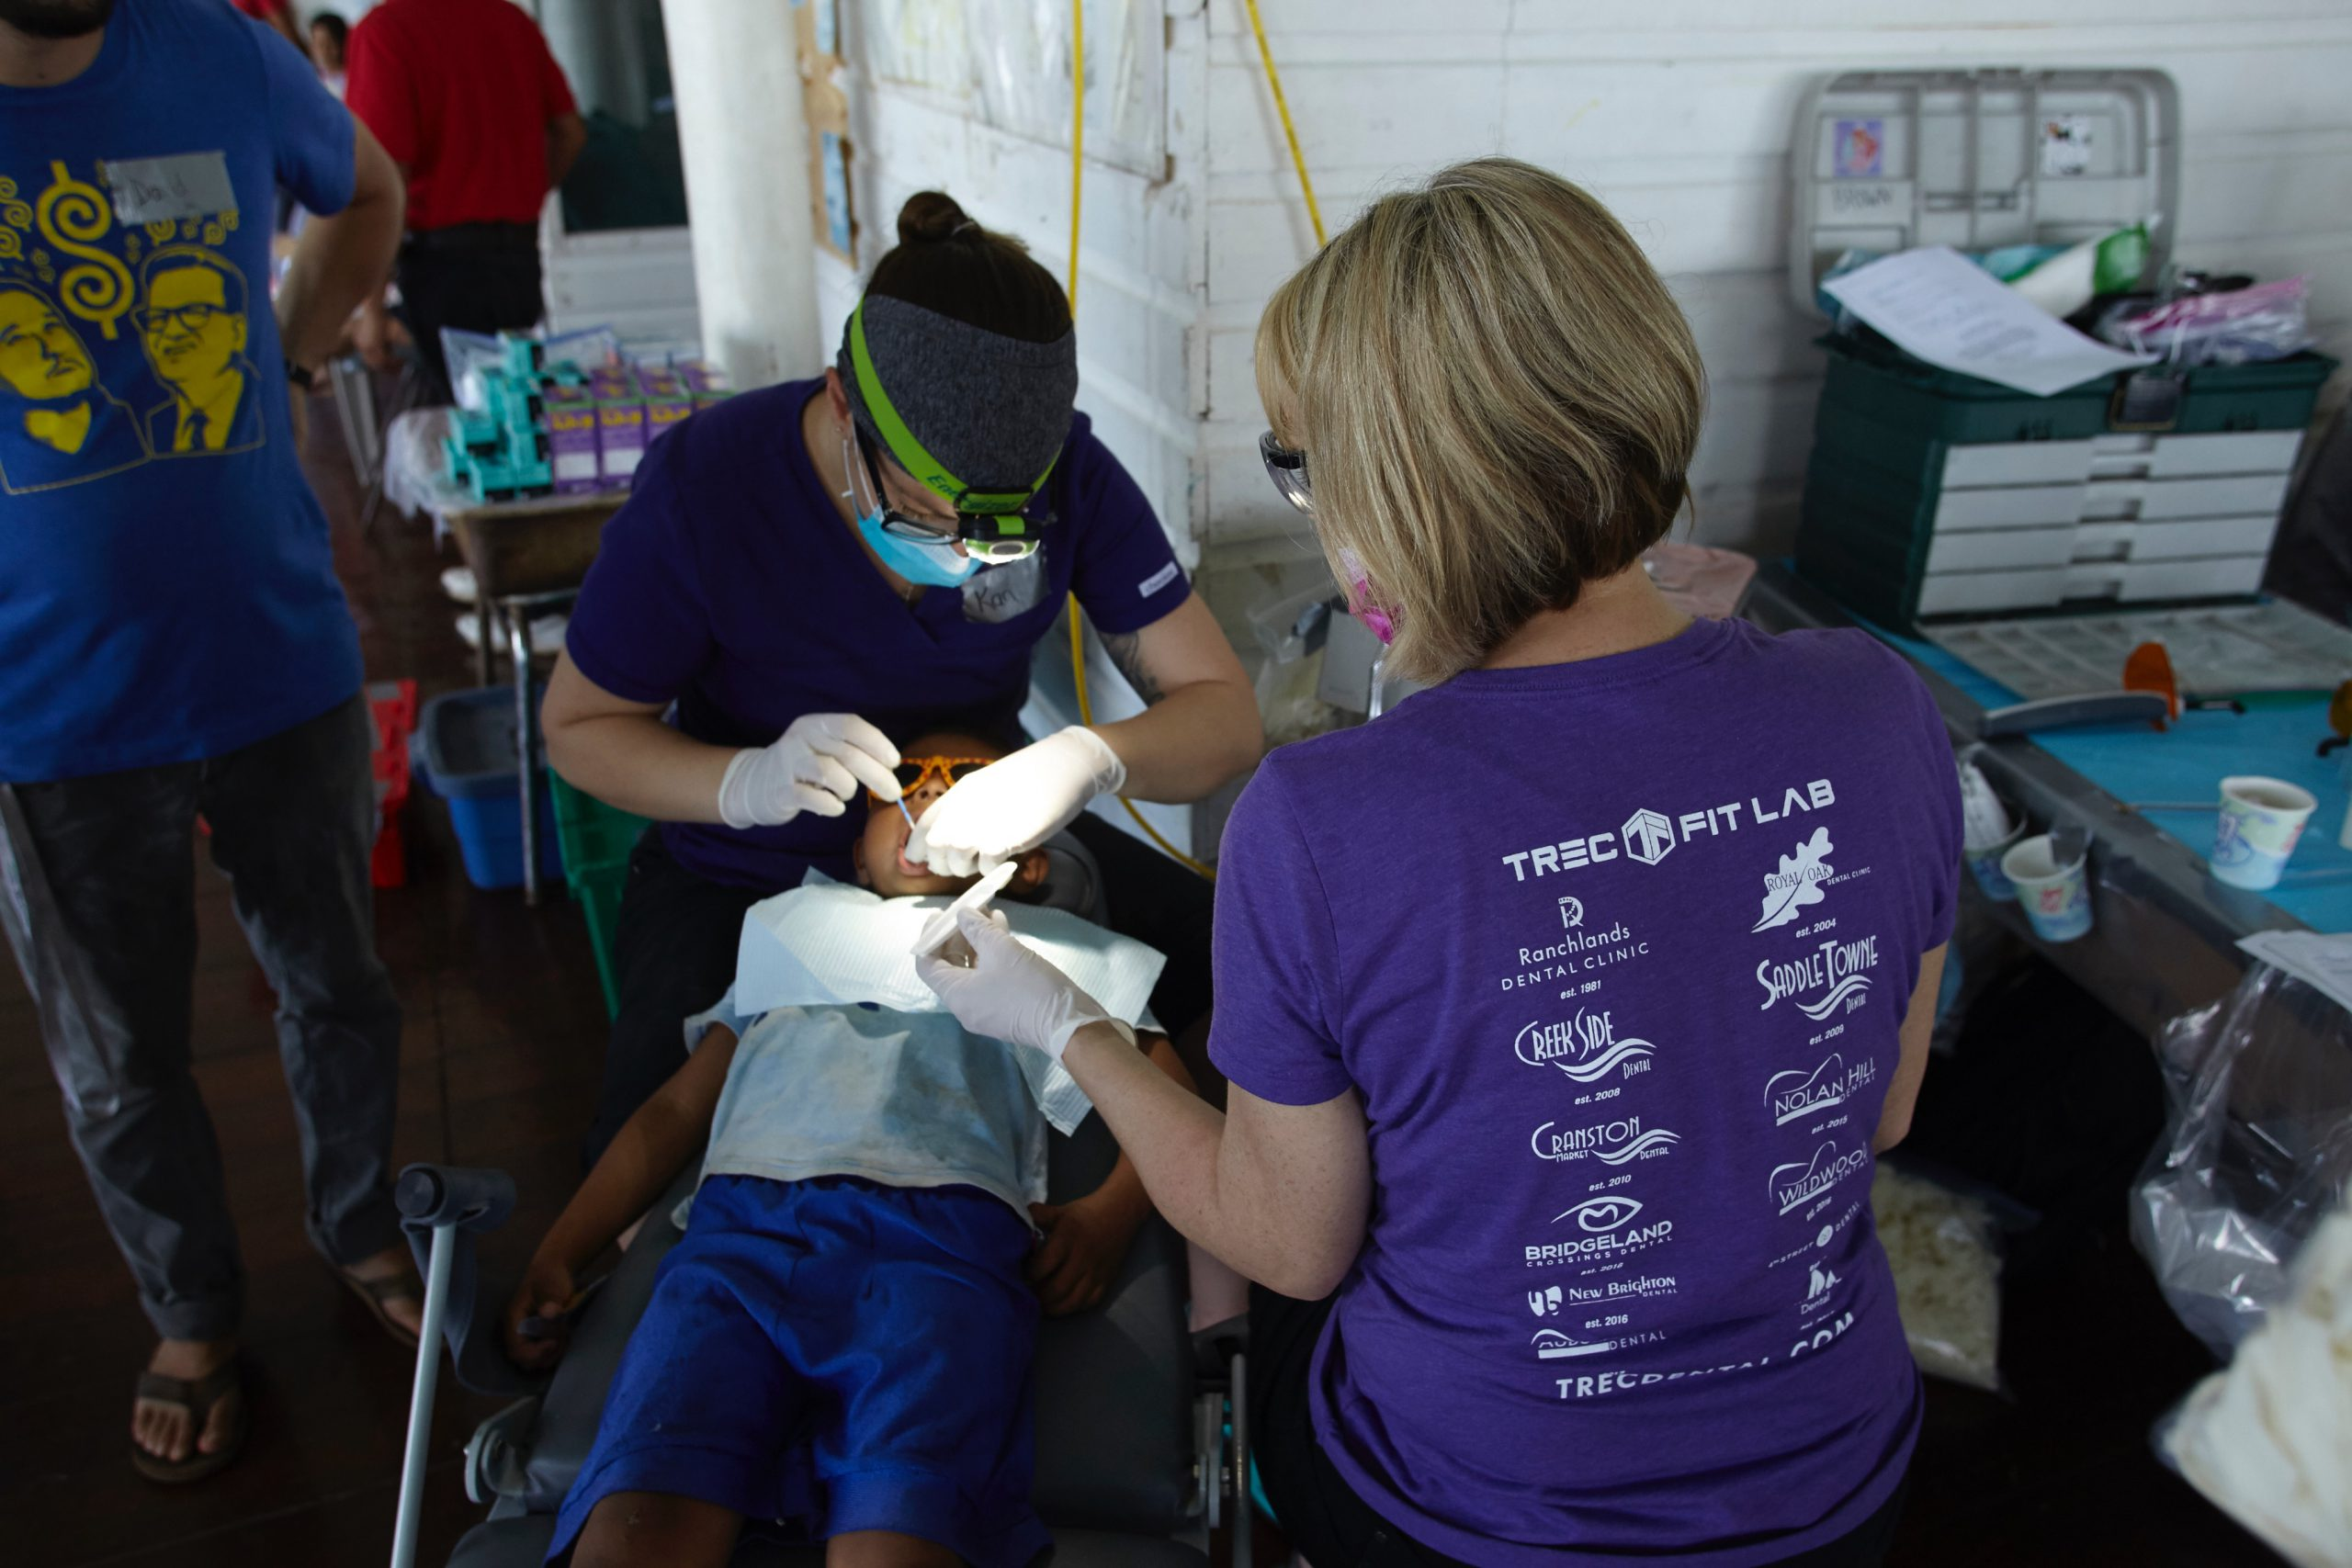 Moving Dental team working on patient